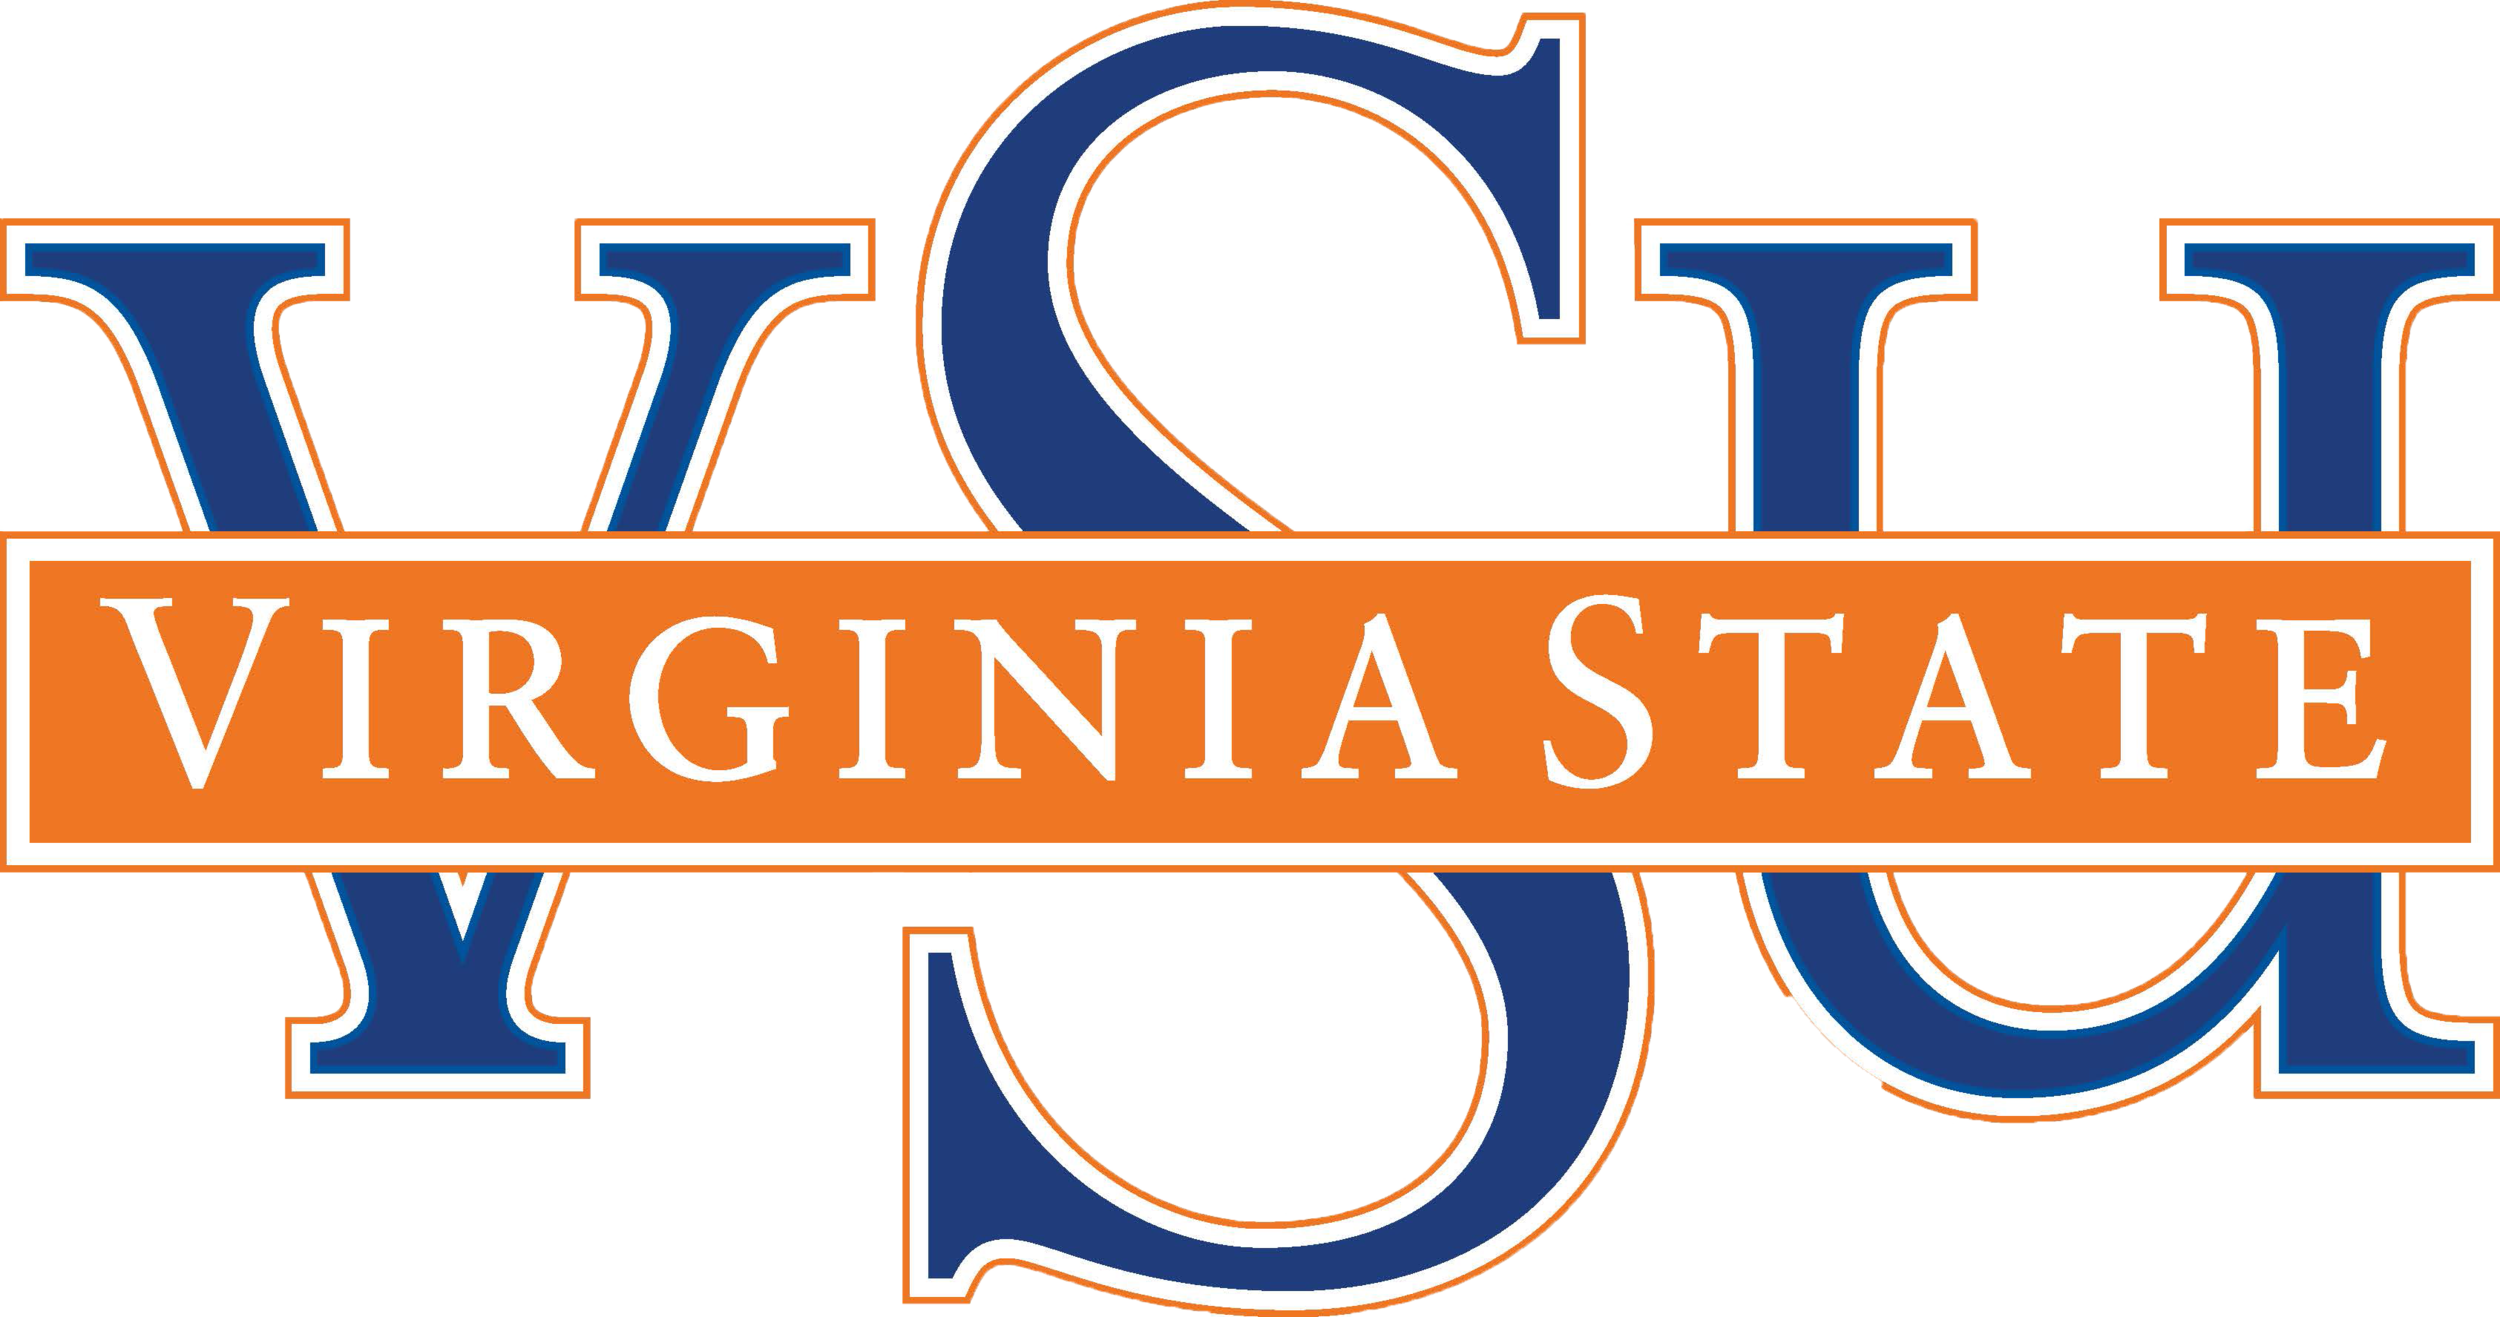 Virginia State University - Virginia State University was founded on March 6, 1882, when the legislature passed a bill to charter the Virginia Normal and Collegiate Institute. The bill was sponsored by Delegate Alfred W. Harris, a Black attorney whose offices were in Petersburg, but lived in and represented Dinwiddie County in the General Assembly.Core Values:Student Centered – Promoting the intellectual, physical, social, and emotional development of students in all facets of University life.Integrity – Displaying the highest degree of ethical commitment in the pursuit of knowledge.Engagement – Developing civically engaged citizens who value all persons and demonstrate the desire to positively impact their immediate surroundings, nation, and world.Customer Service – Creating an atmosphere of respect, collegiality, and responsiveness to provide excellent service to our internal and external constituents.Excellence – Utilizing a balanced approach to create a high expectation of achievement, awareness, and intellectual development among our students, faculty, and staff.Scholarly Research – Conducting scholarly activity is at the forefront of our disciplines and applying translational discoveries and intellectual pursuits to benefit the community.Global – Preparing globally aware citizens that respect and appreciate cultural differences of all people through service and the dissemination of knowledge to the world.Teaching – Providing learning environments and activities consistent with best educational practices to create a framework where scholarship is intentional, transformational, and deepens understanding in the preparation of future leaders.Diversity – Fostering a community that identifies, values, and respects differences of all people by creating a positive experience for students, faculty, staff, and the community.